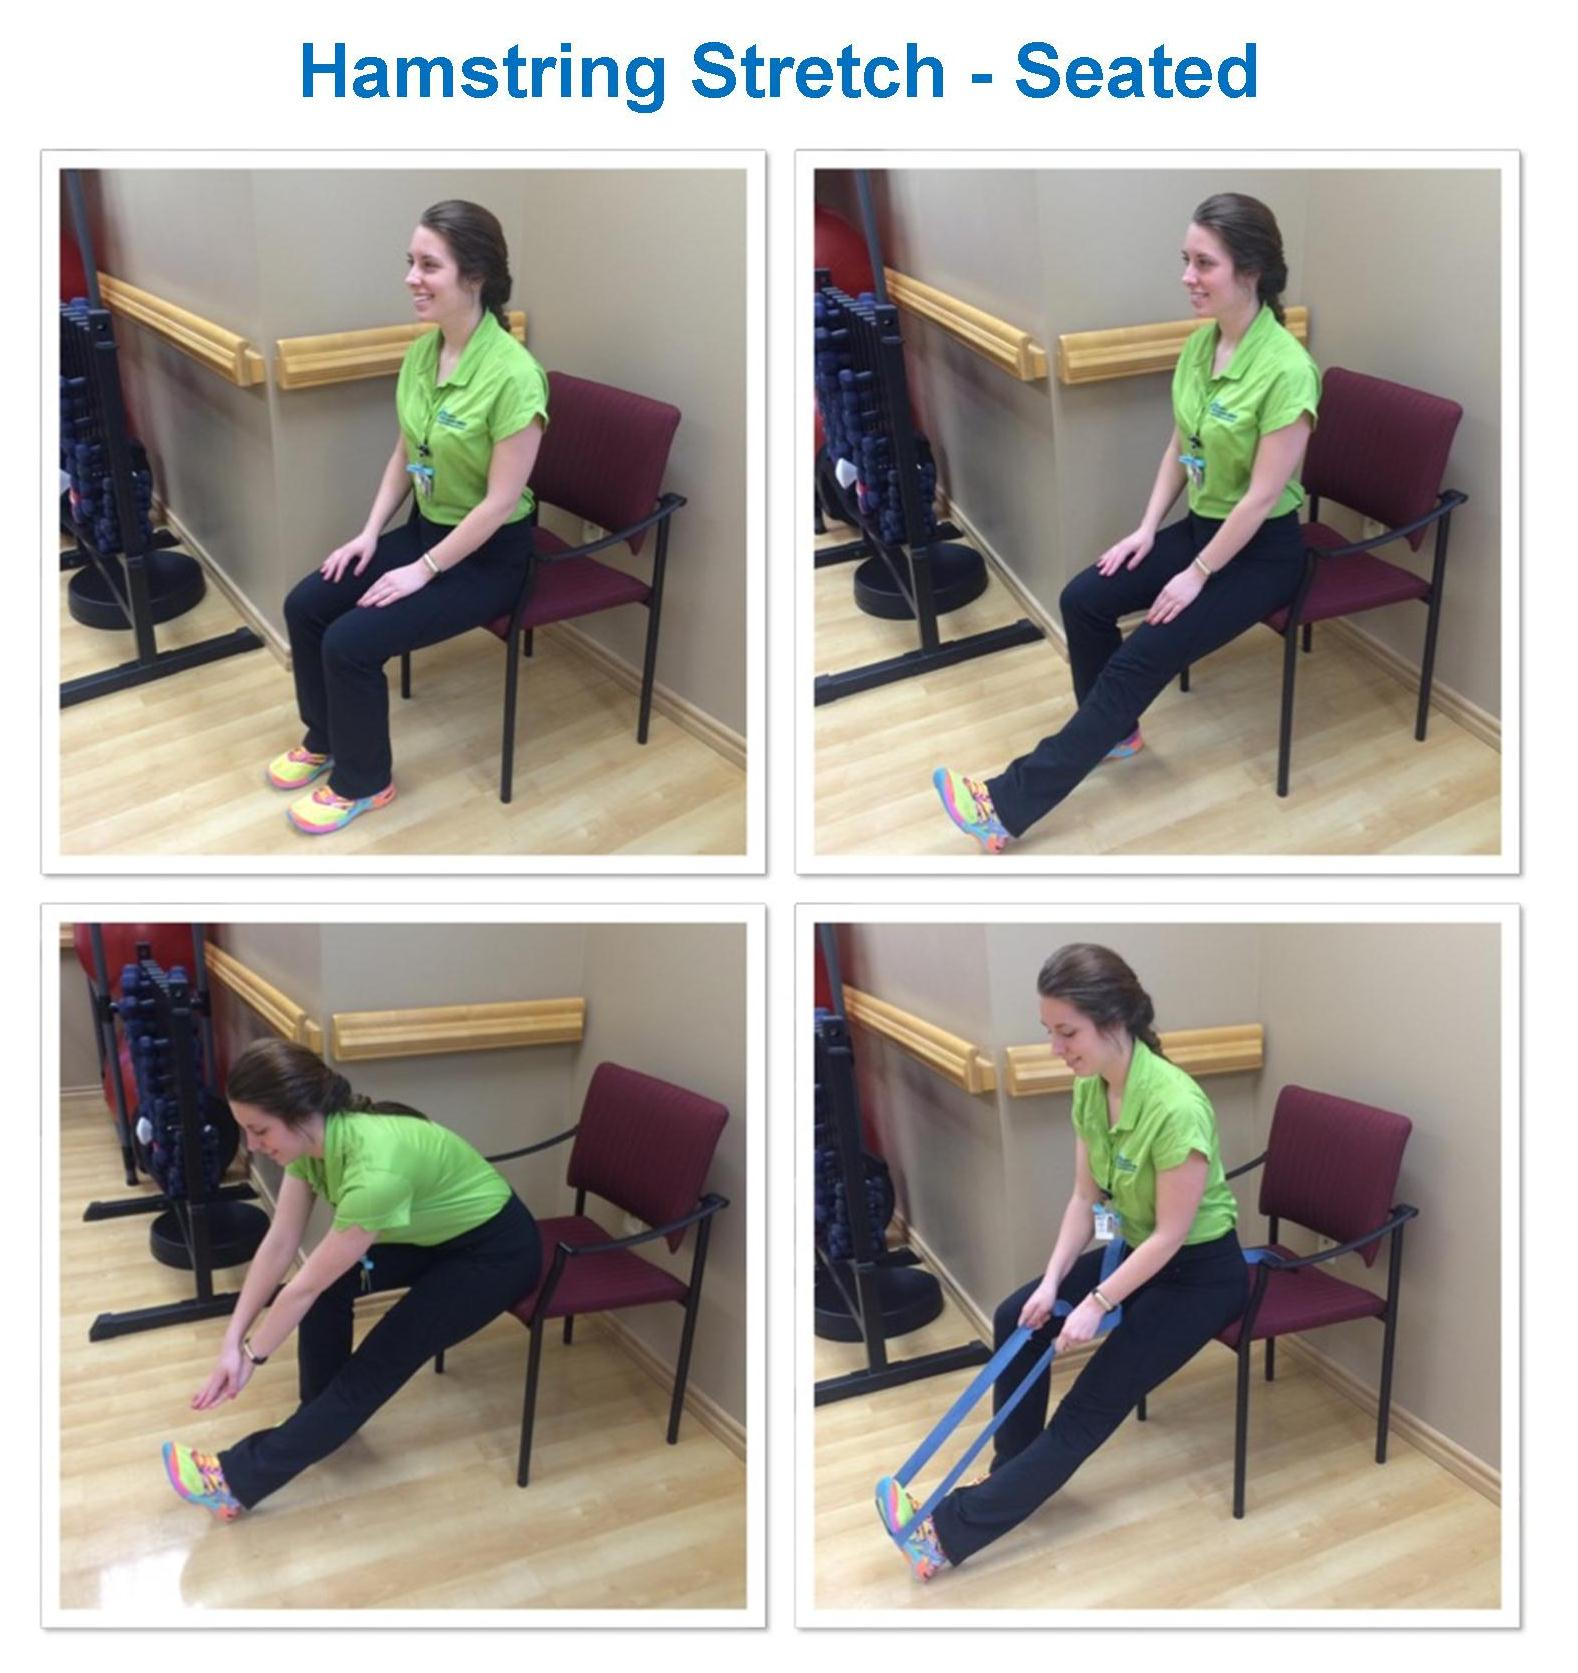 Hamstring stretch in seated position